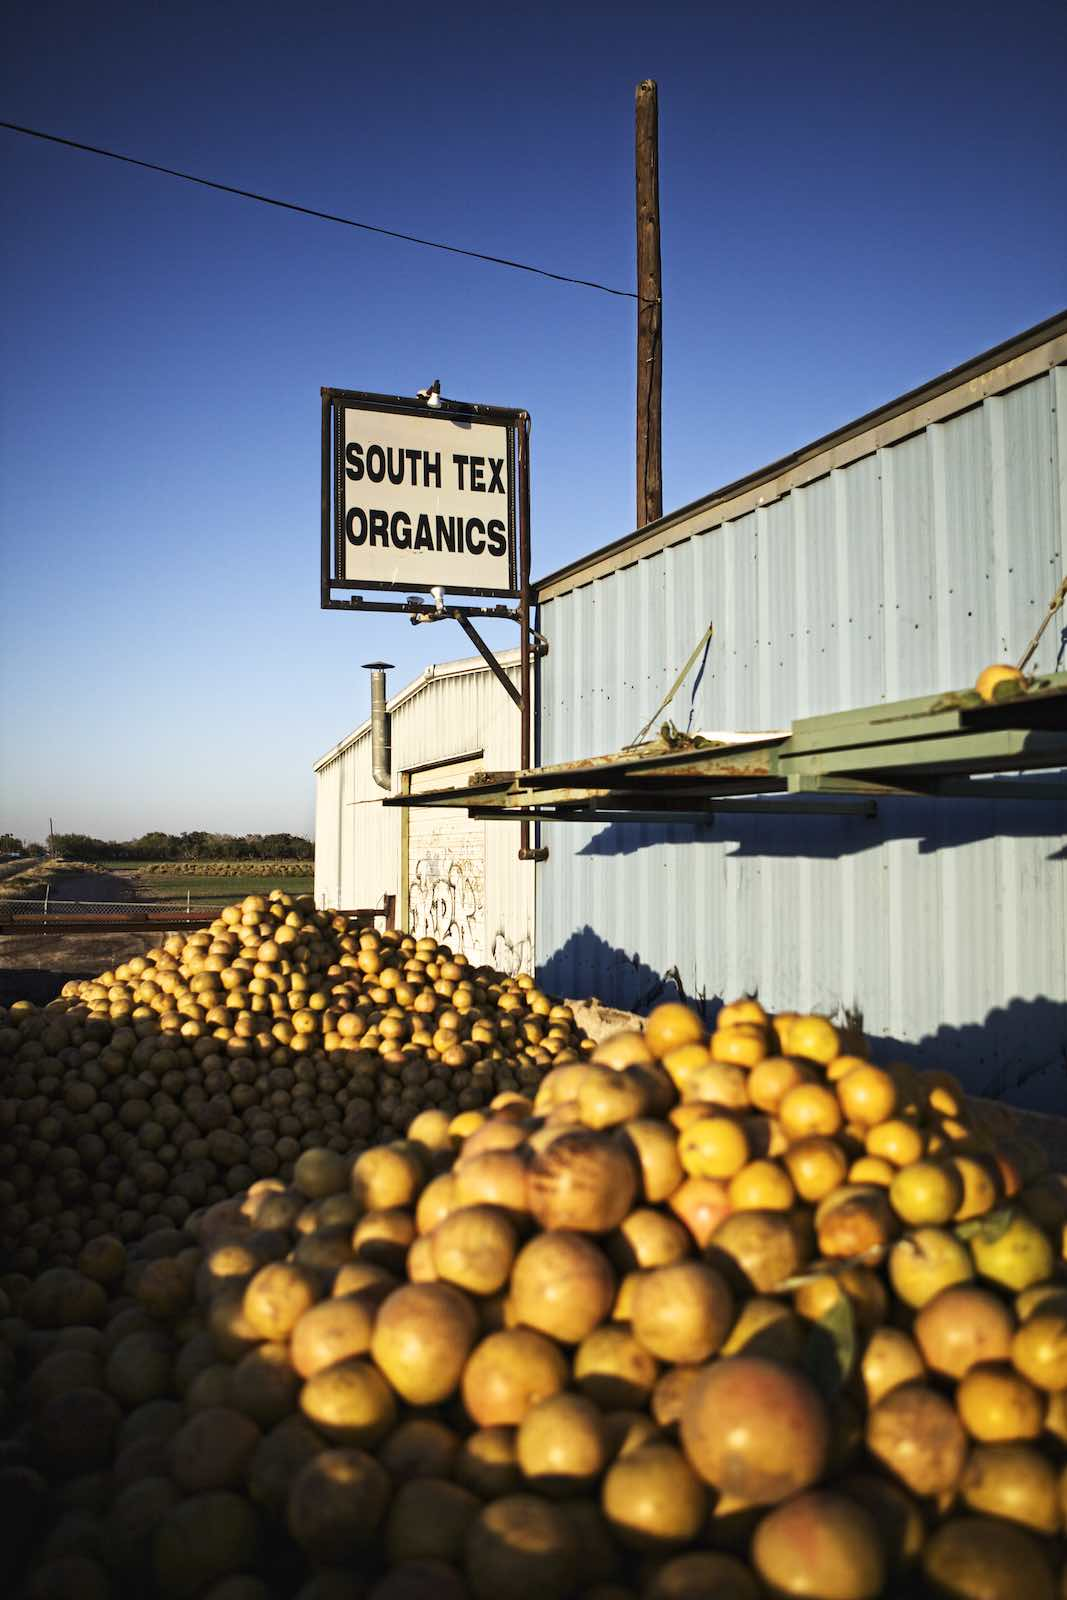 Grapefruits piled outside a steel building, ready to be harvested.